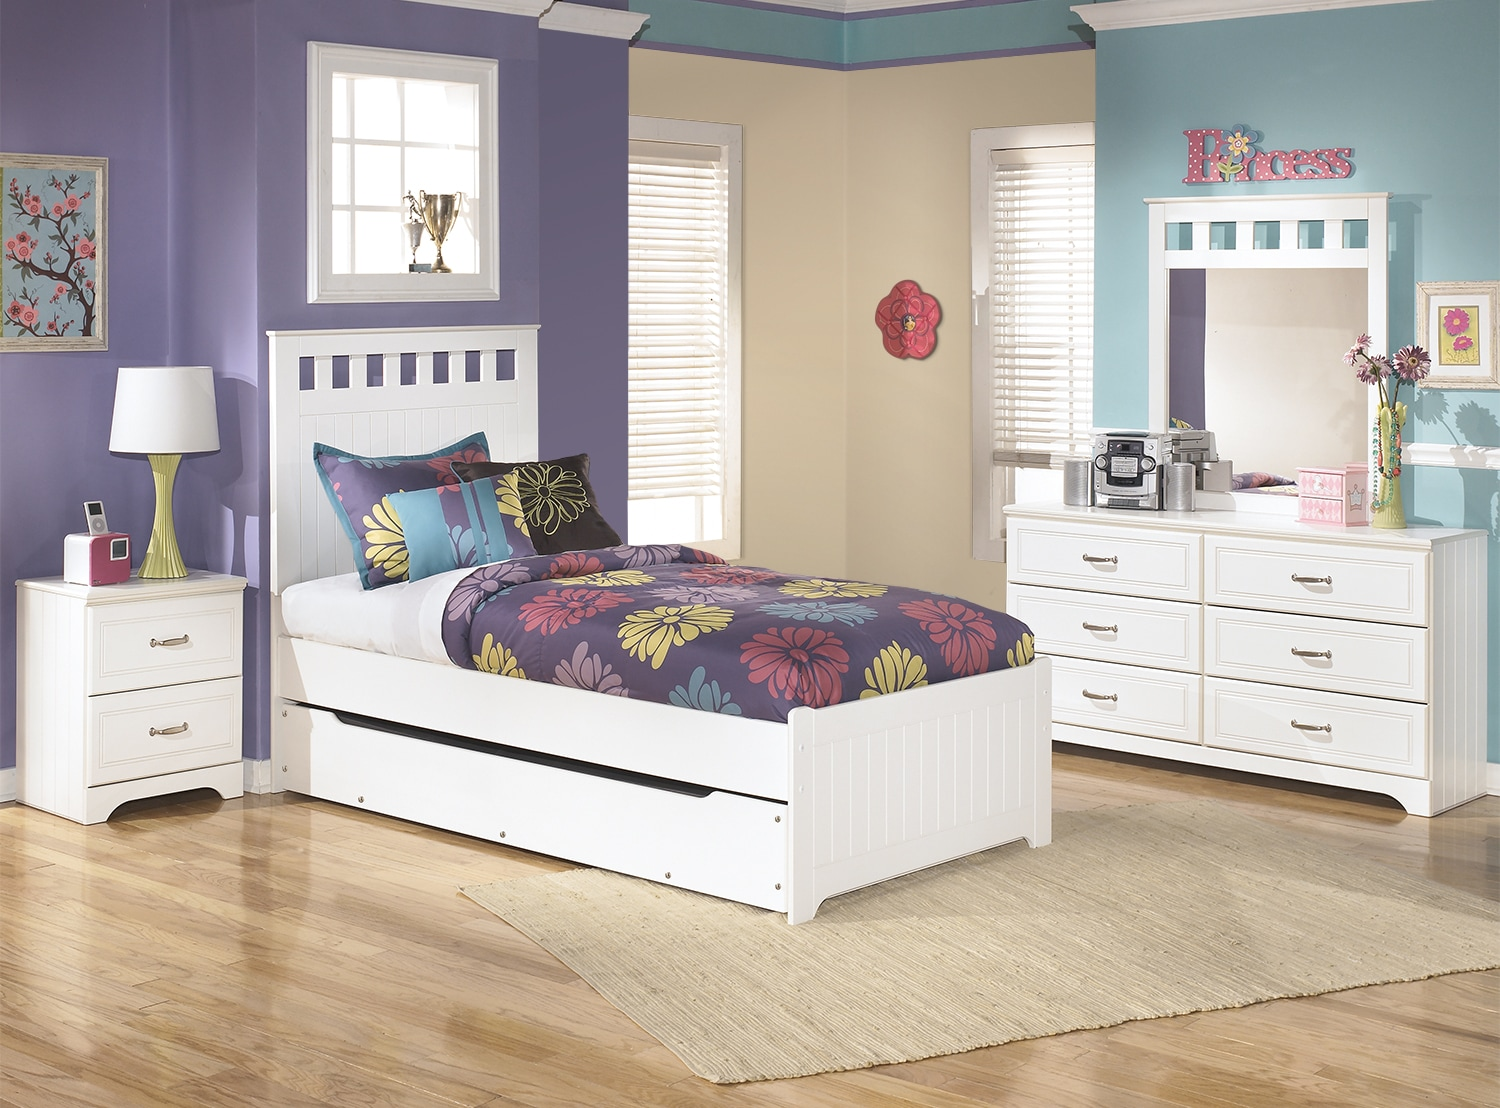 Kids Furniture - Lulu 6-Piece Twin Panel Bed Package with Trundle